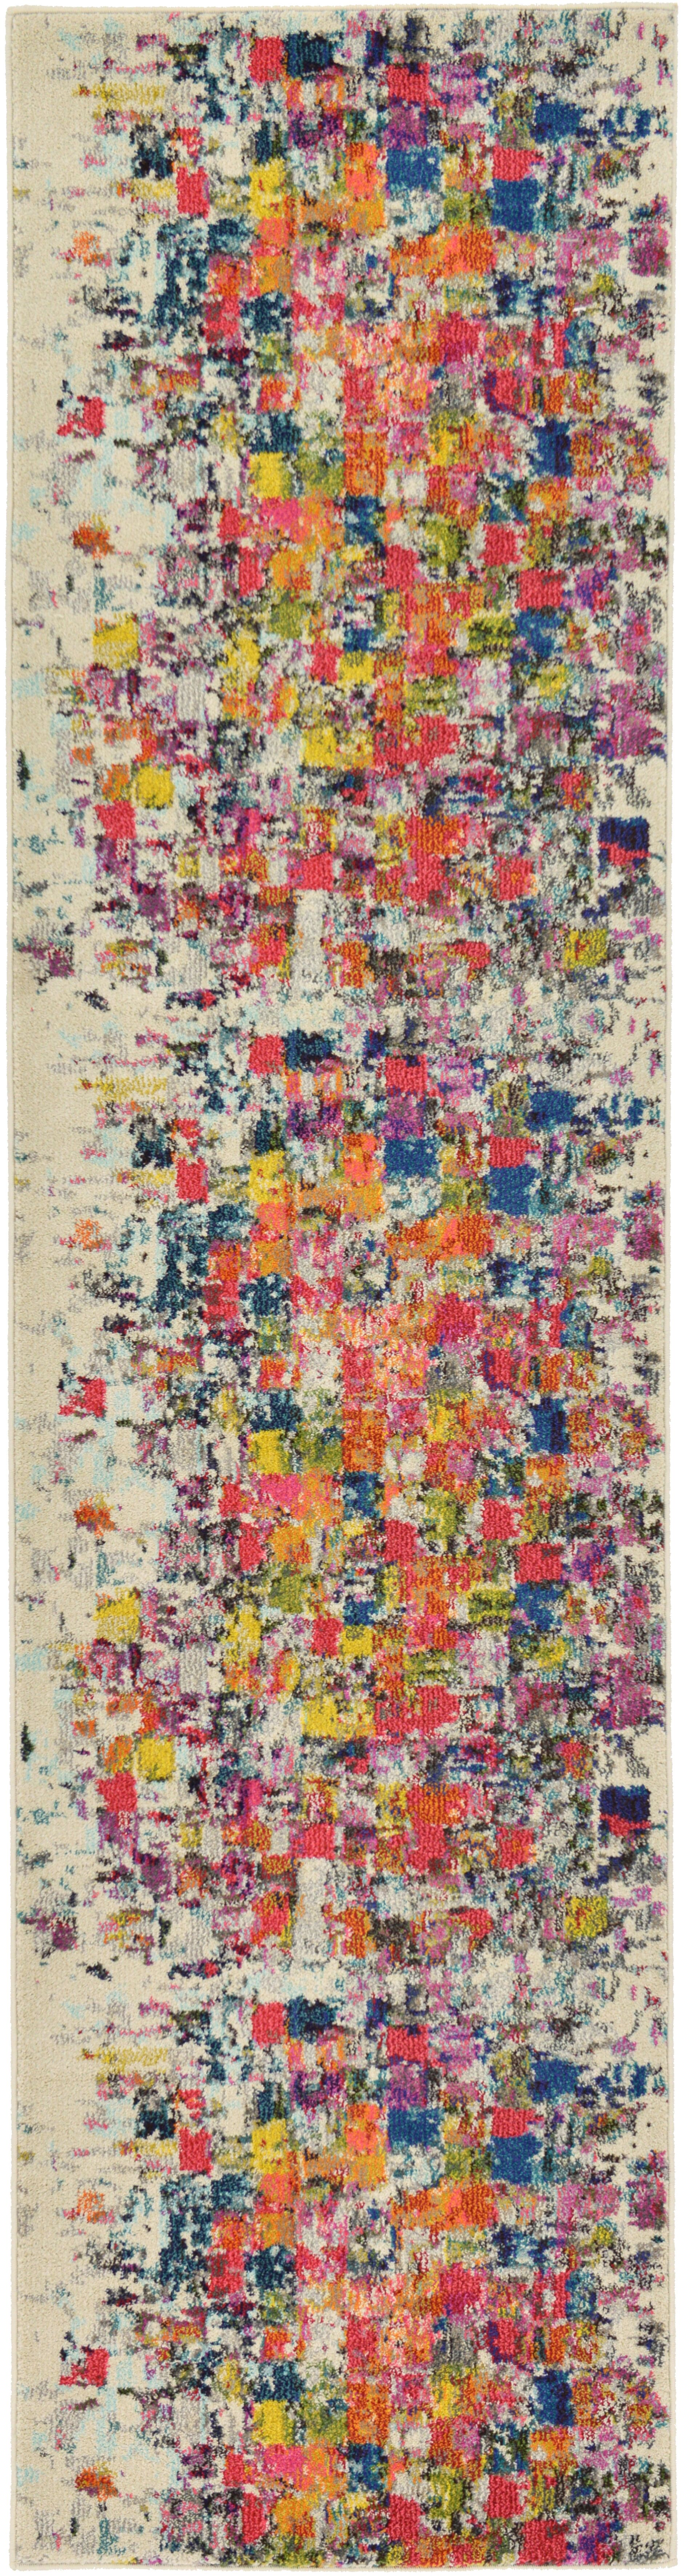 Oldsmar Red/Yellow Area Rug Rug Size: Runner 2'7